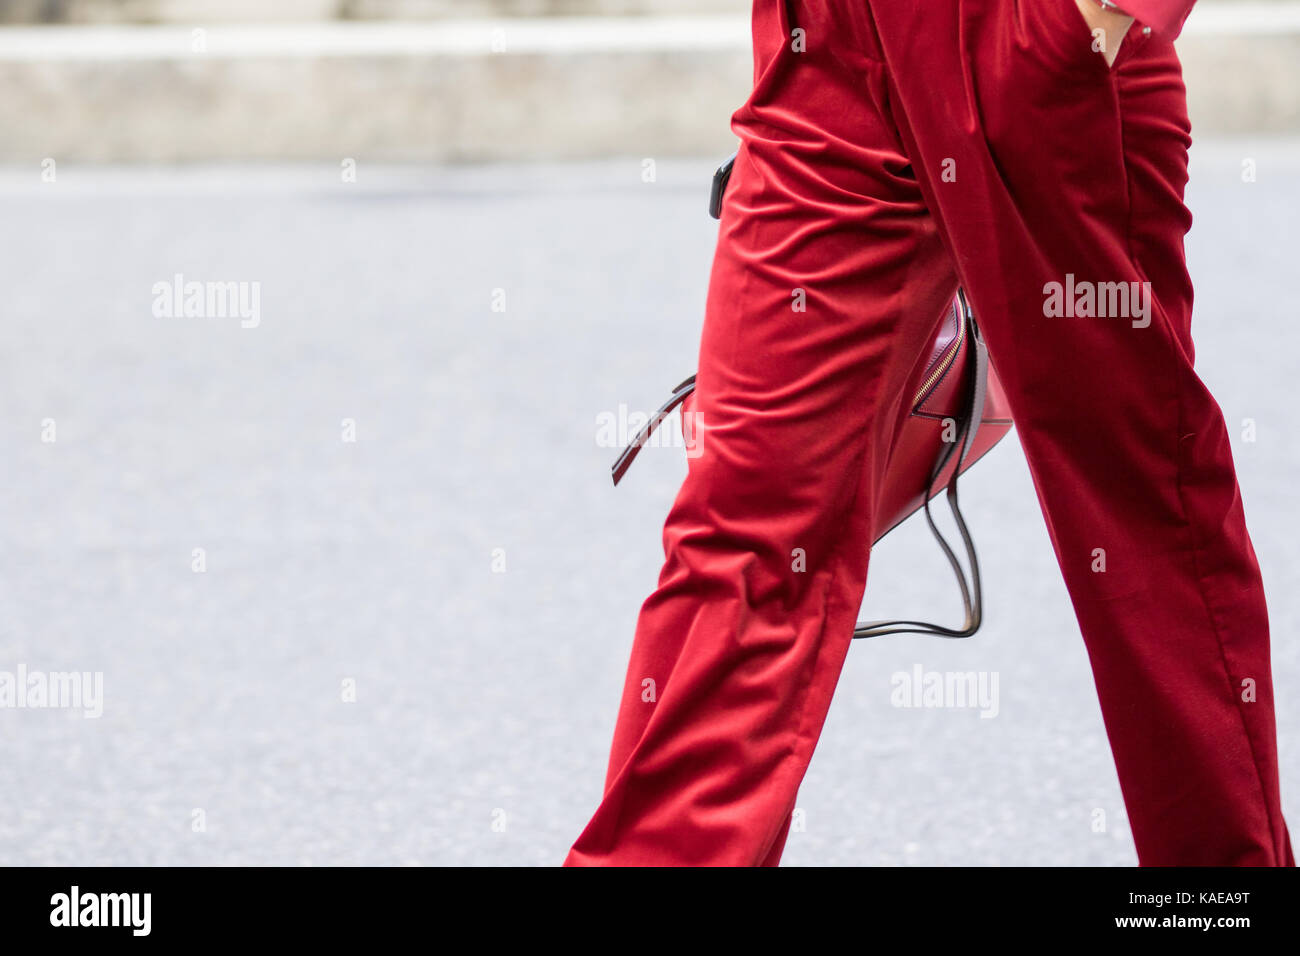 Milan, Italy - September 22, 2017: Model wearing a pair of red pants and red purse during the Armani parade, photographed - Stock Image